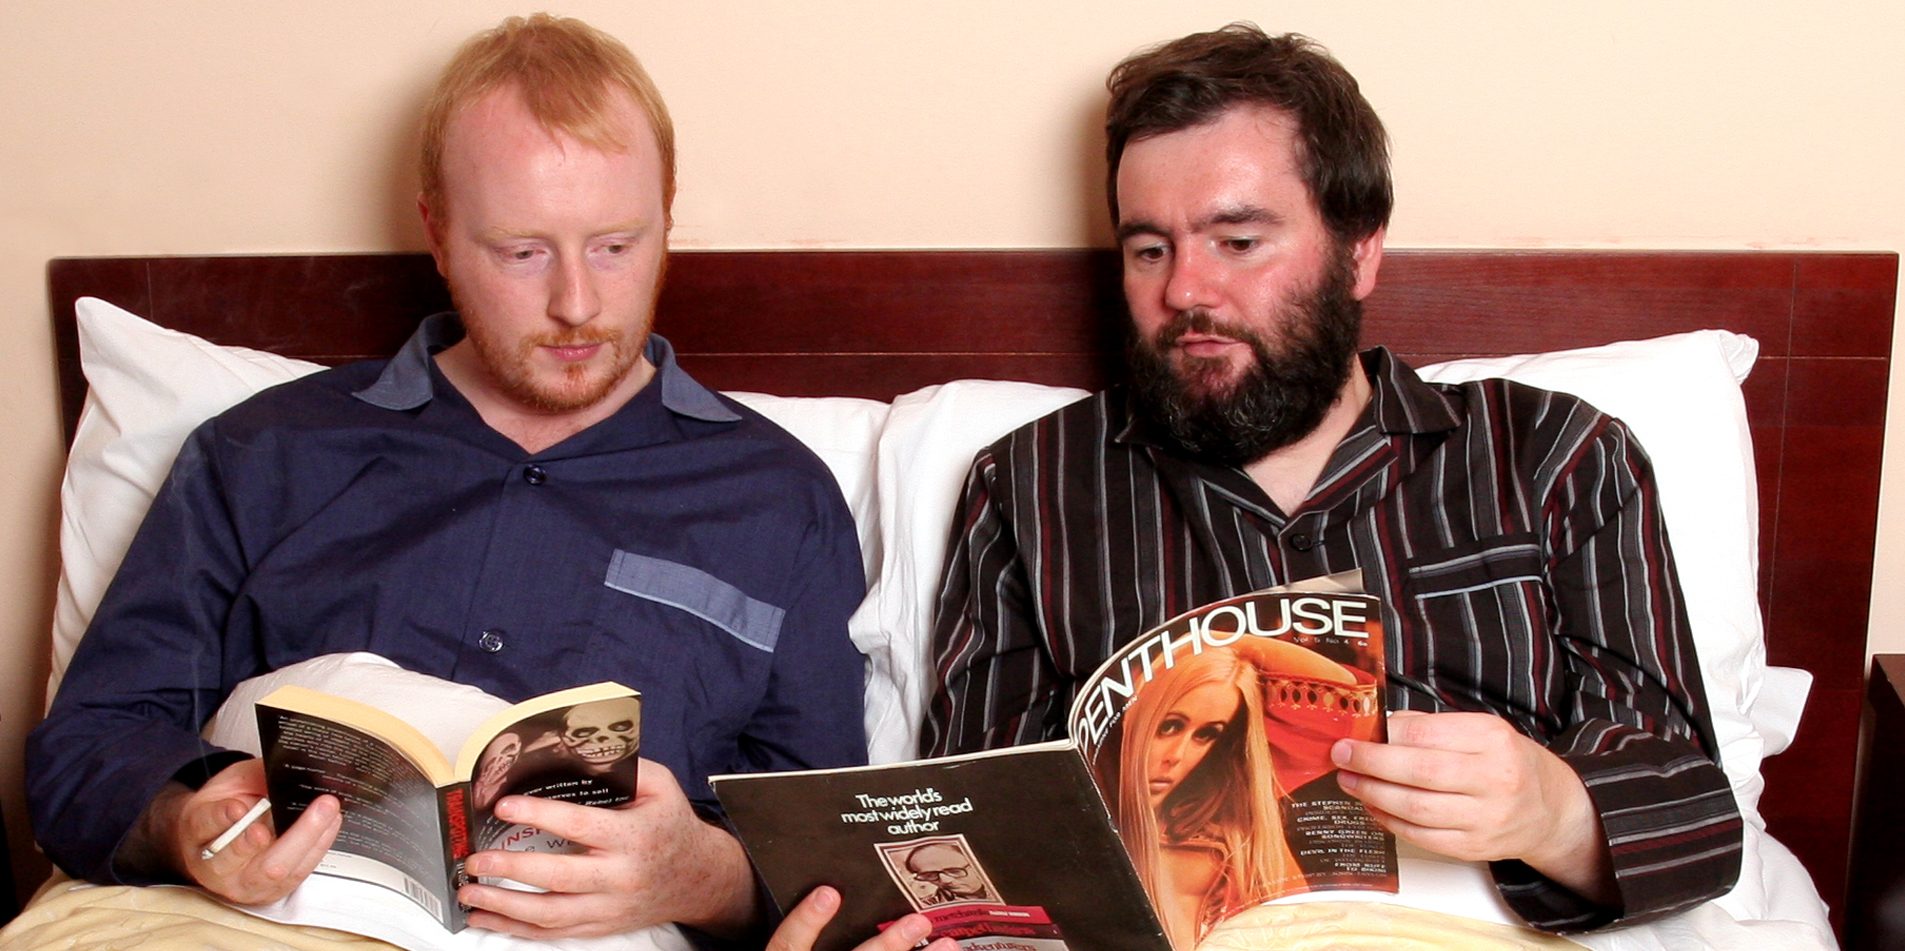 NEWS: Arab Strap announce Newcastle show, will be joined by Man of Moon on tour